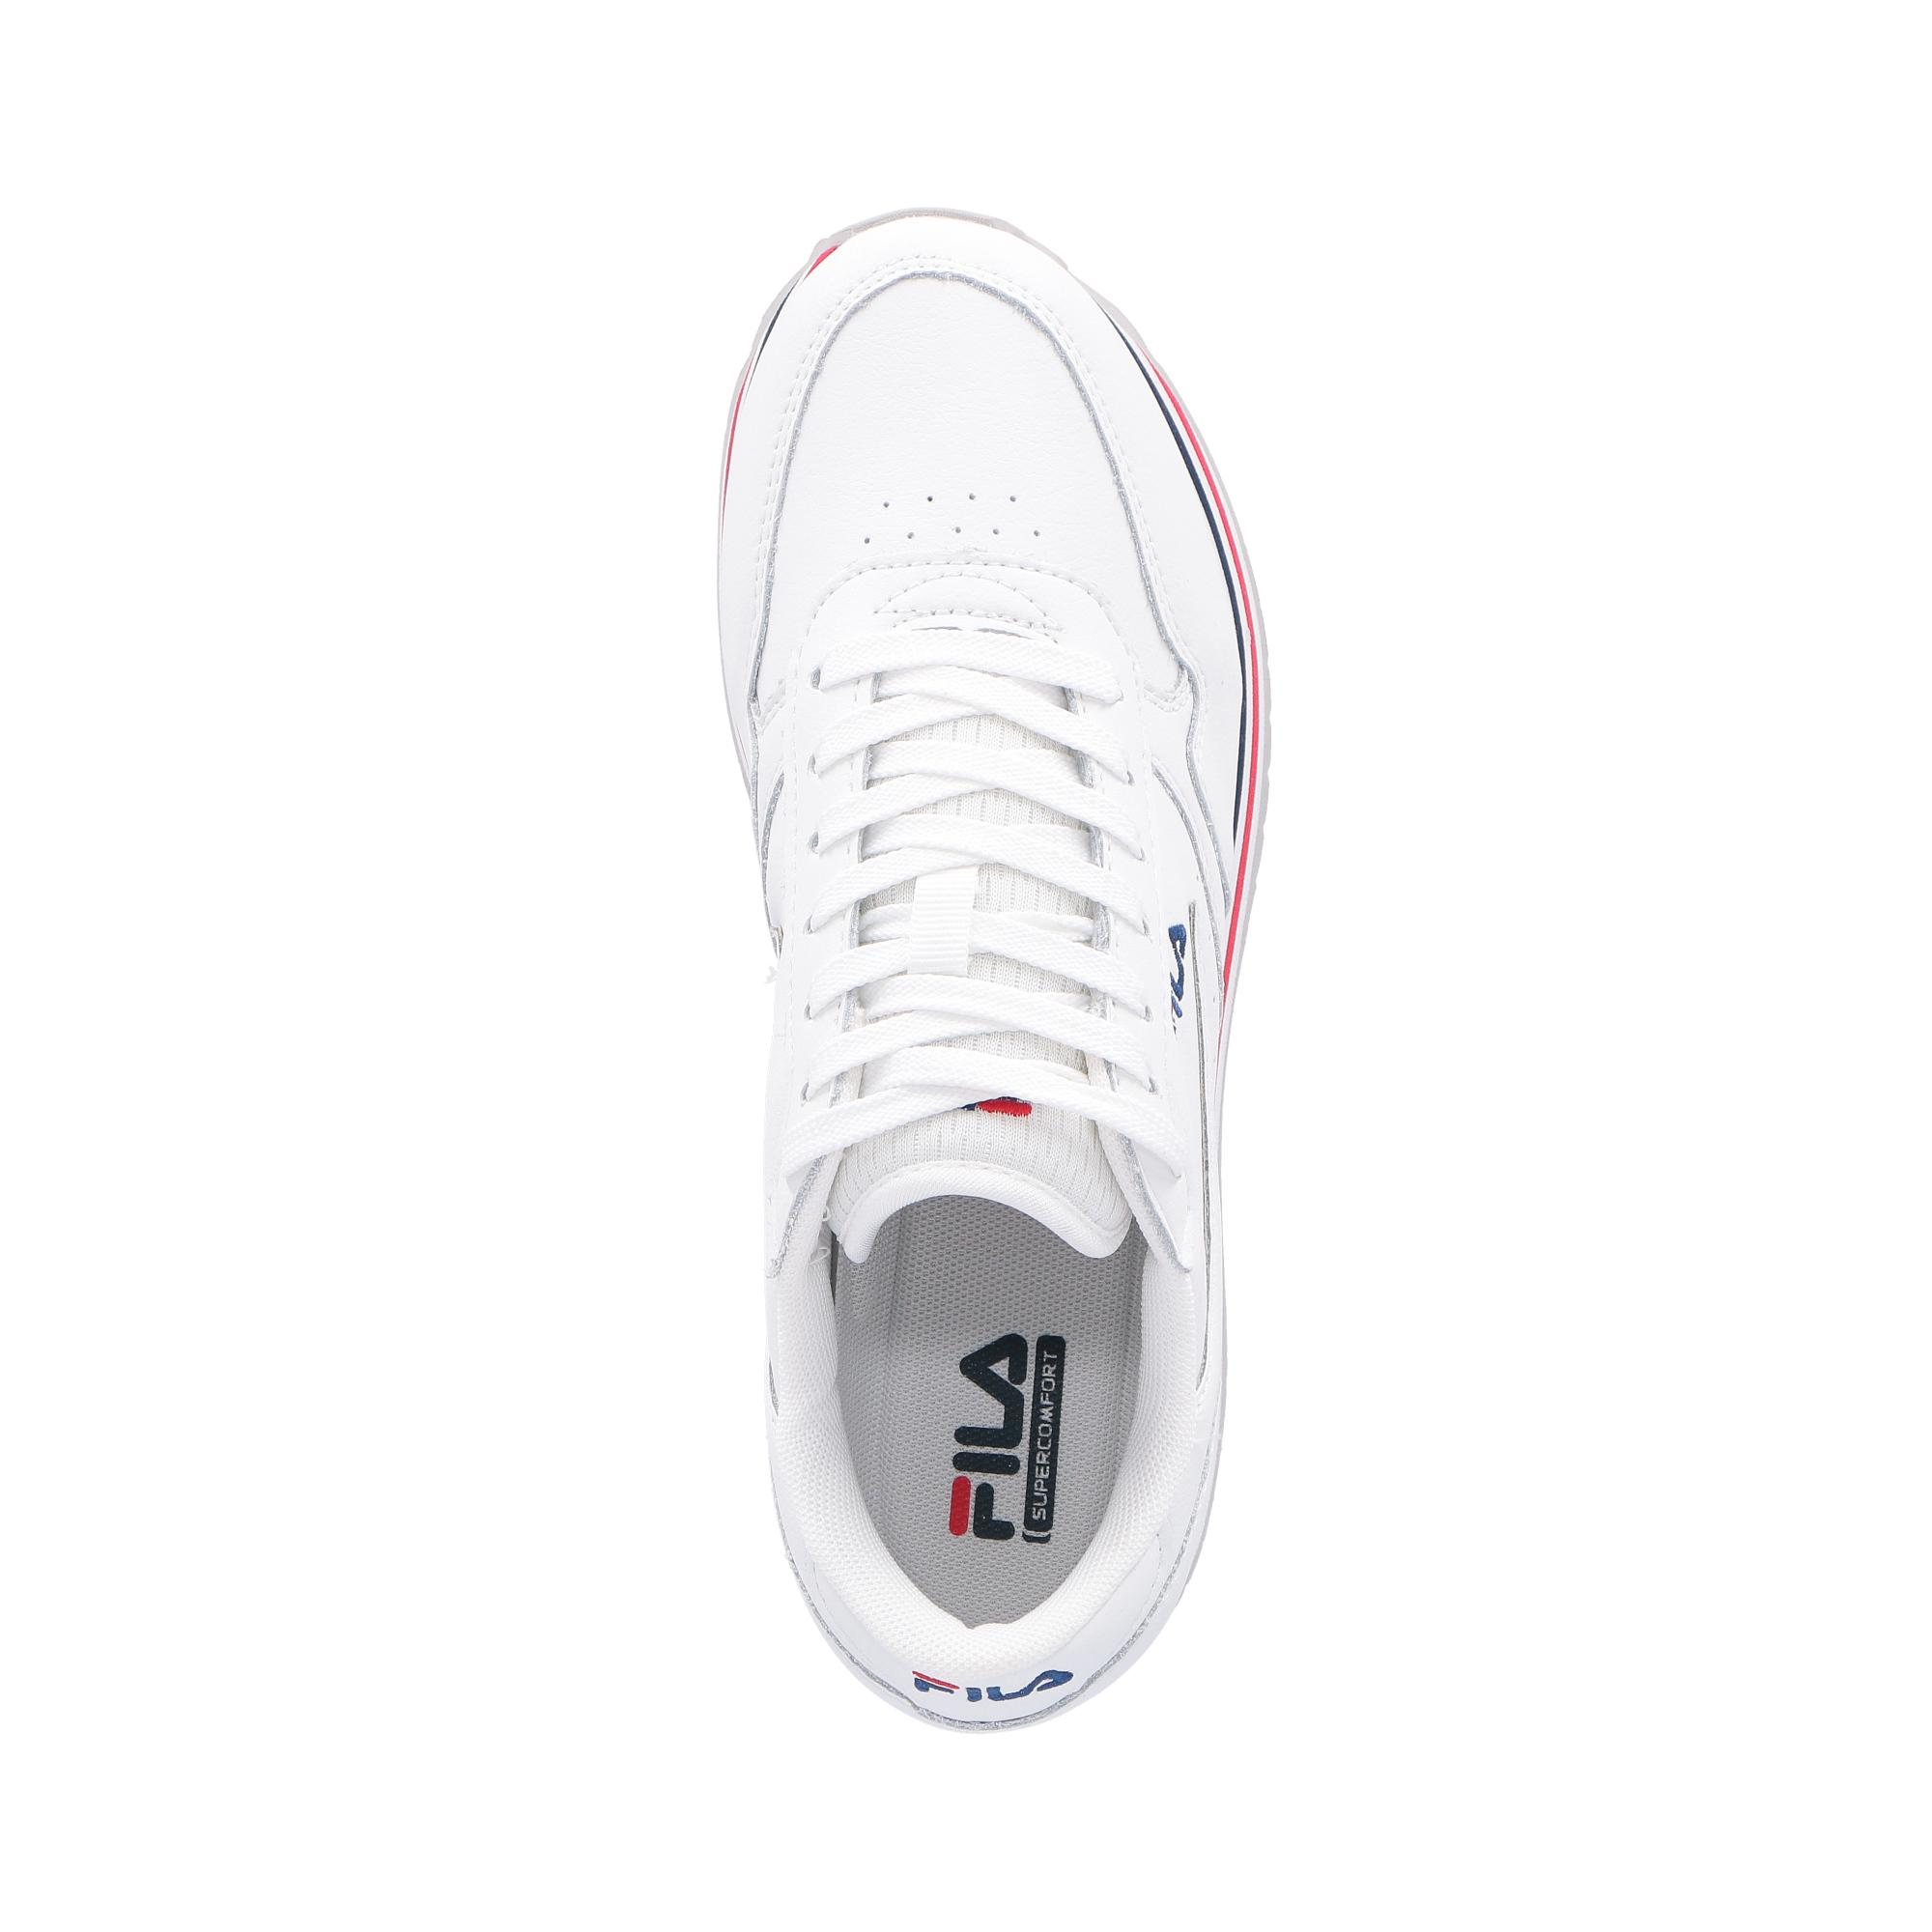 Fila Orbit Zeppa Stripe White stripe